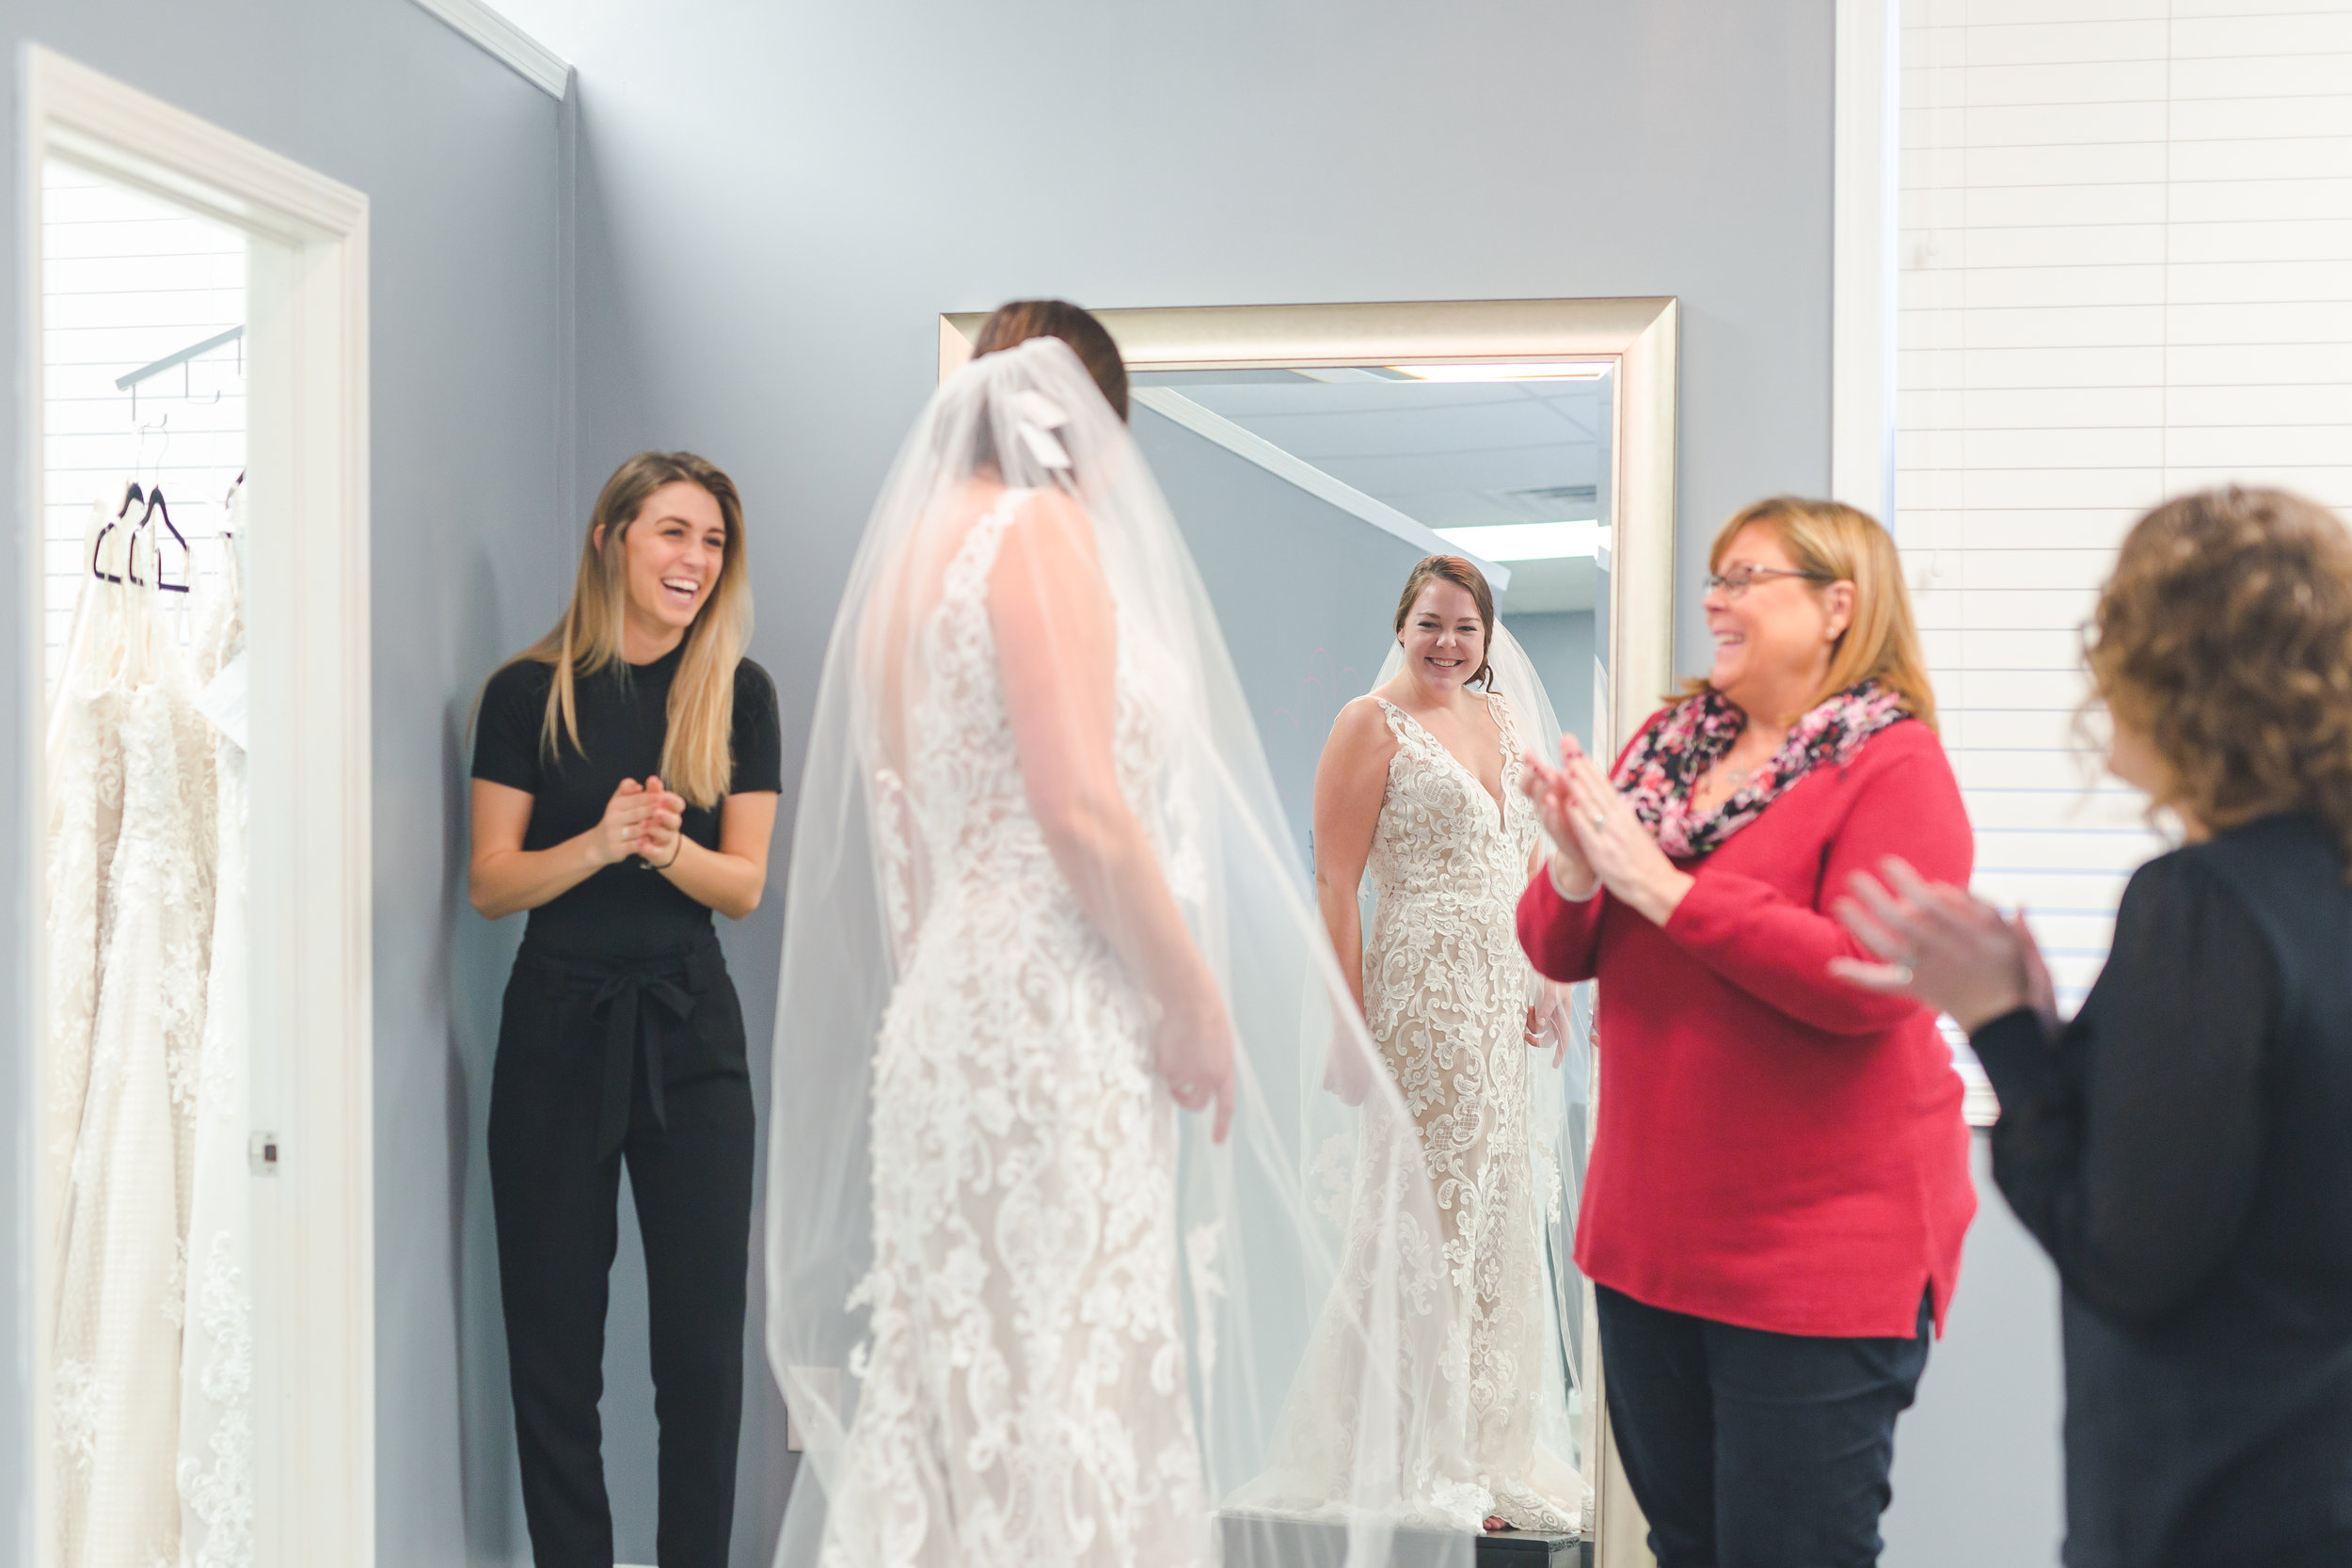 Webster - Experience, Heart to Heart Bridal in Webster. A bridal experience like no other.